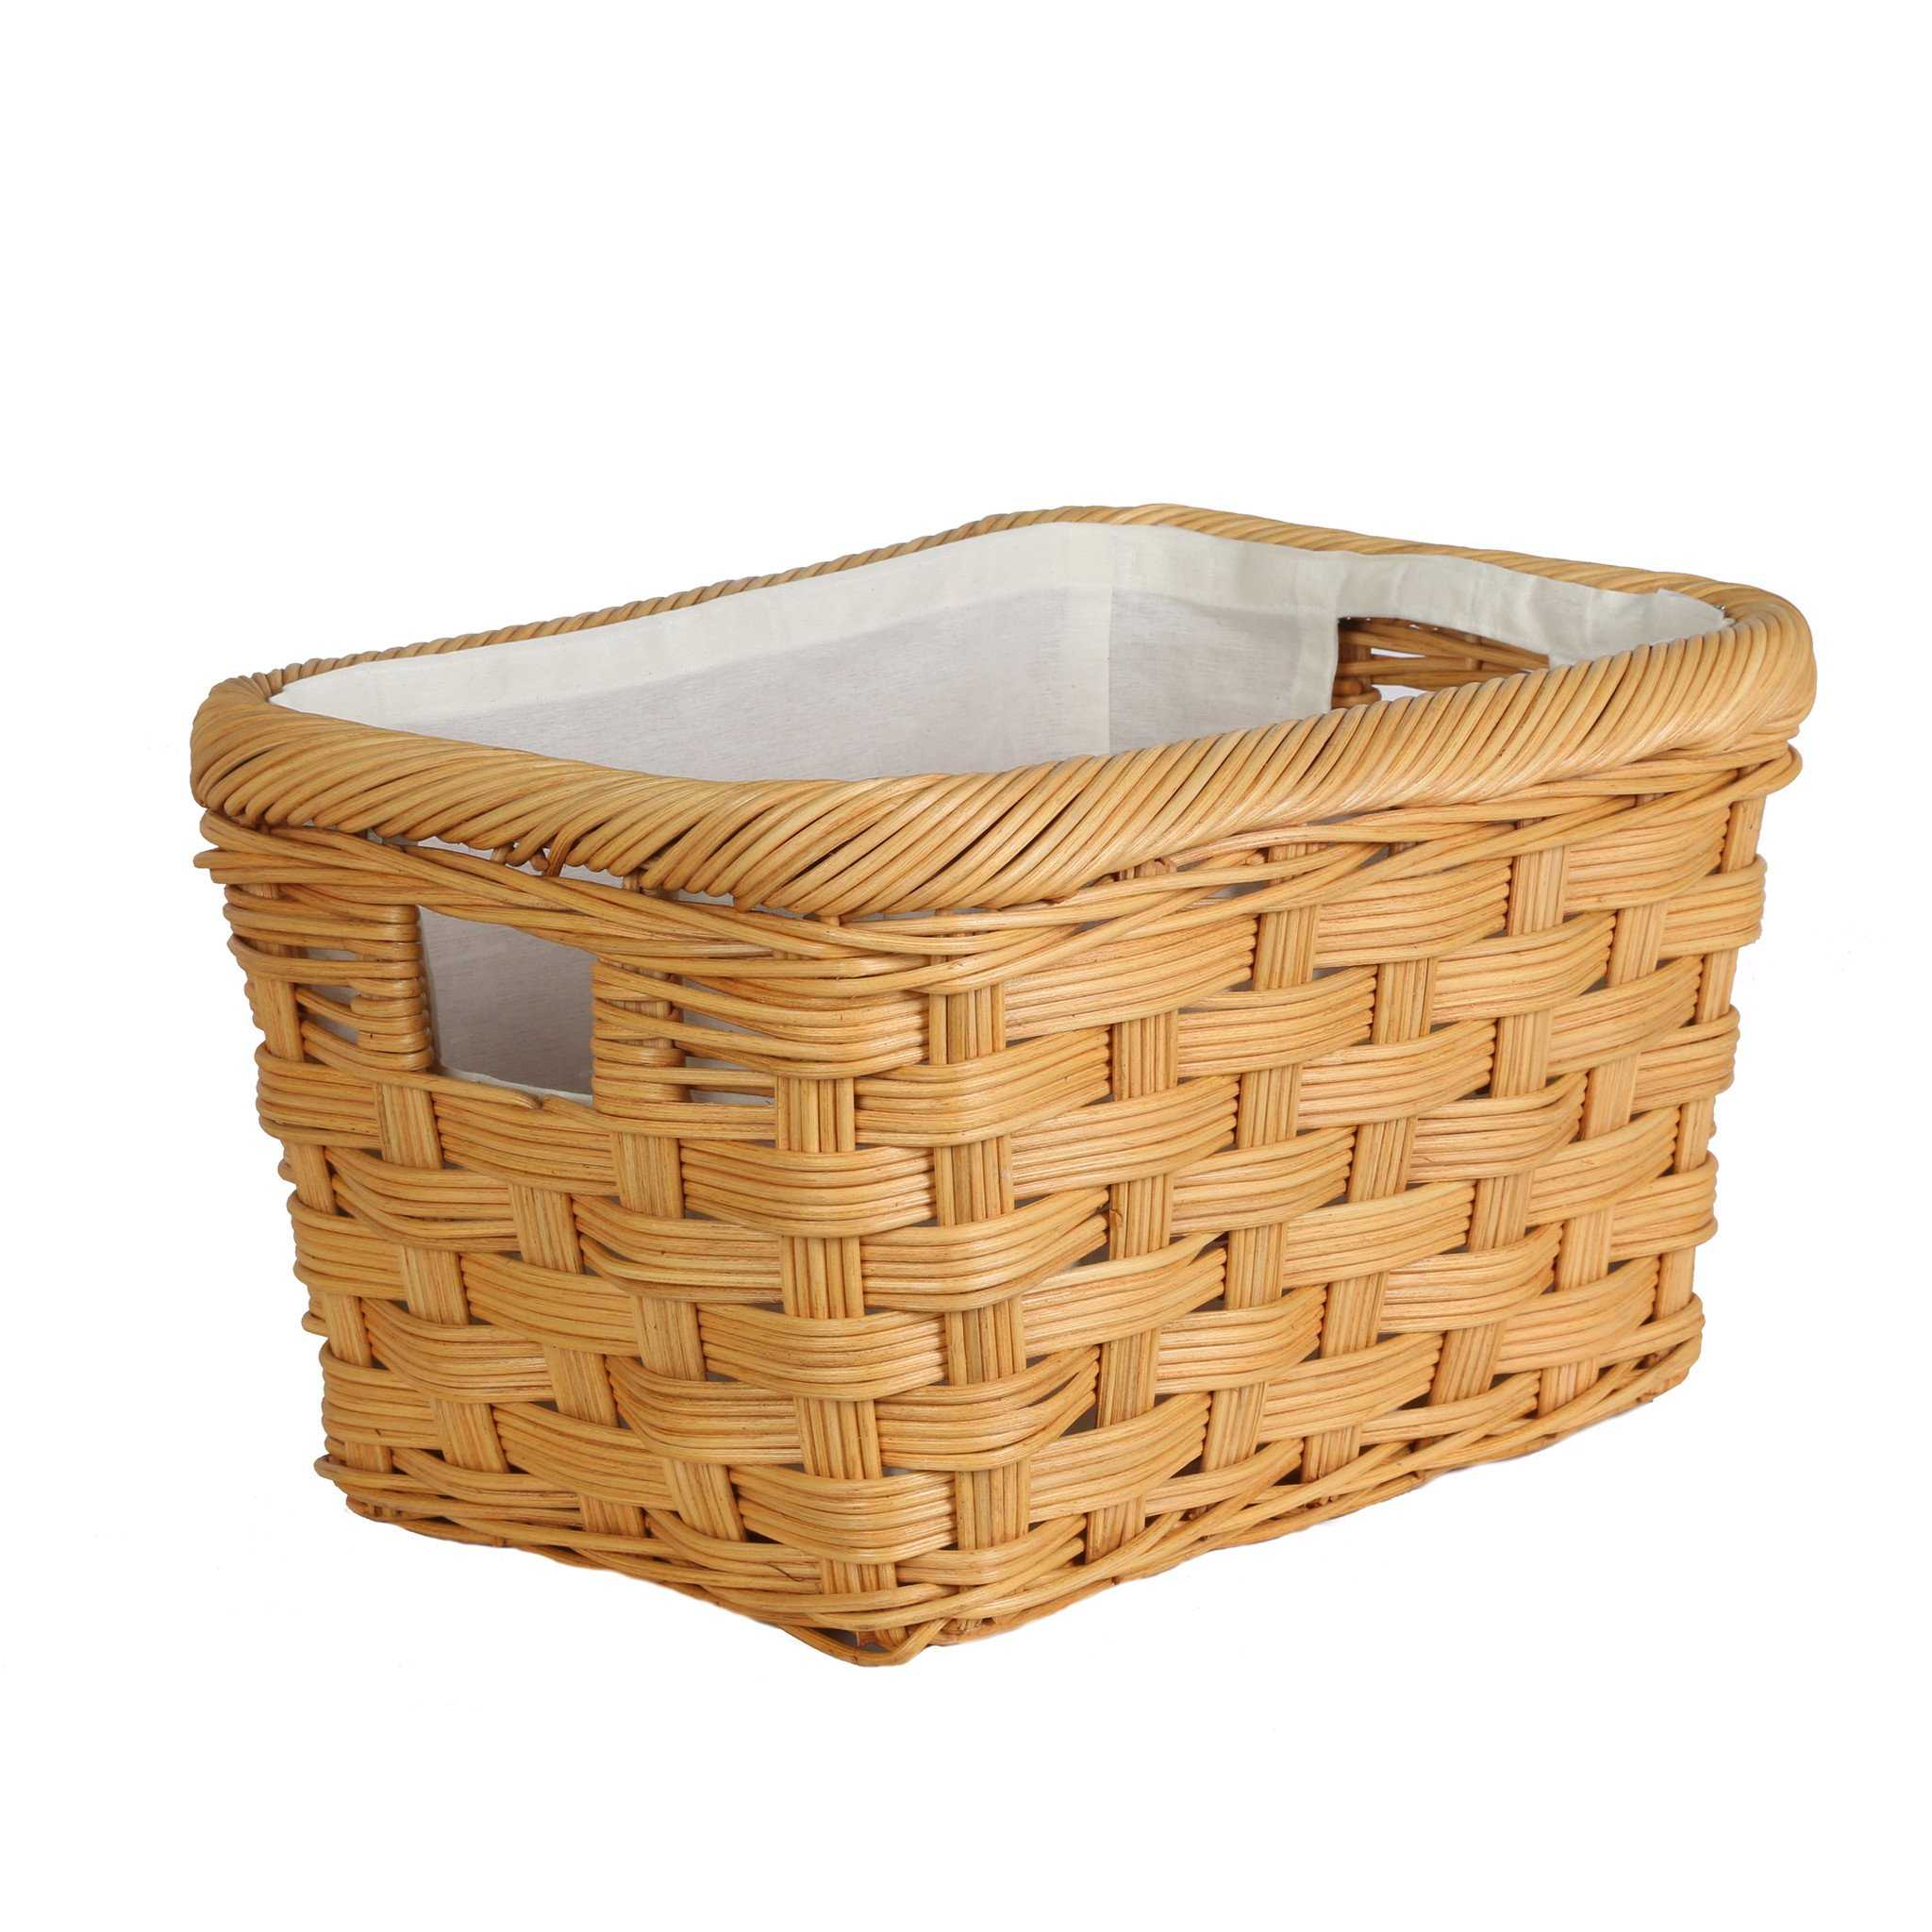 Determining the ideal wicker baskets for laundry